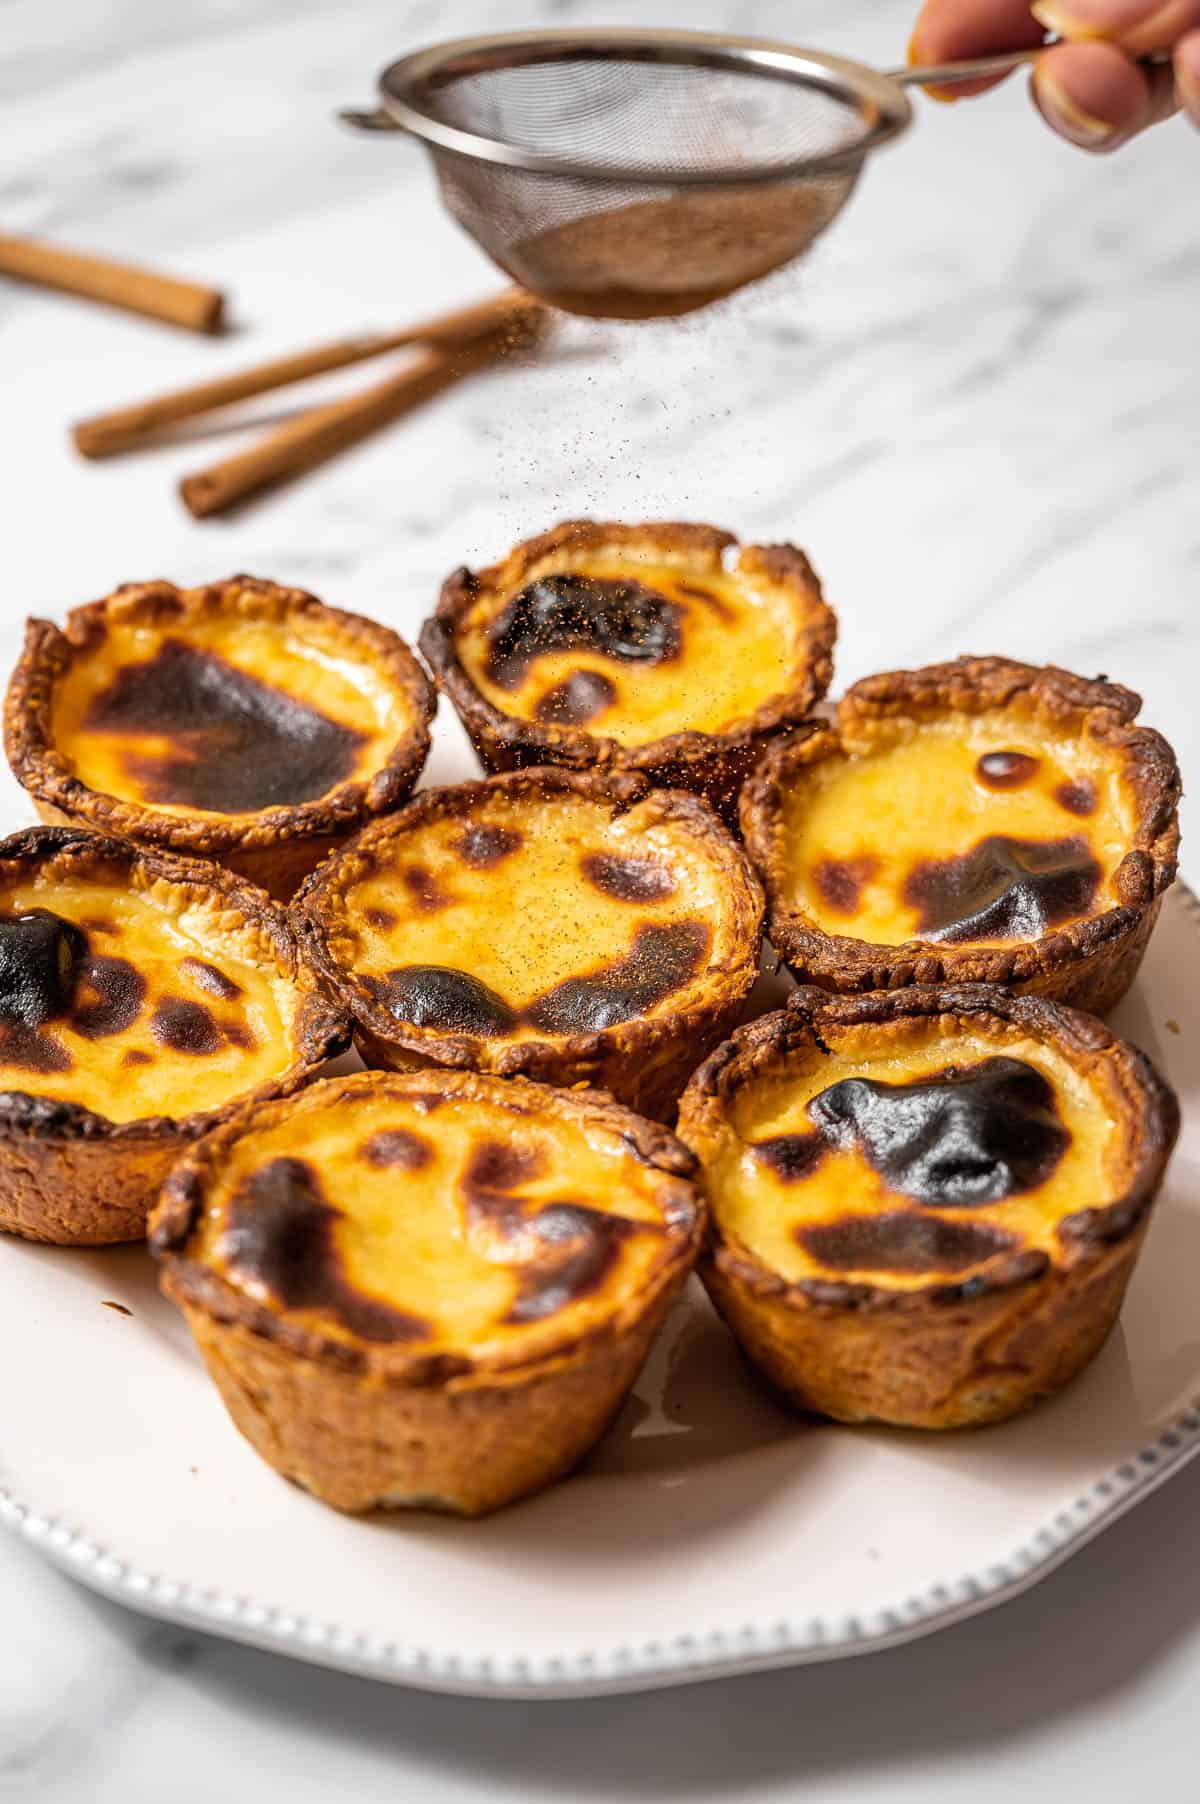 A plate of pasteis de nata (Portuguese custard tarts) with a sifter of ground cinnamon above